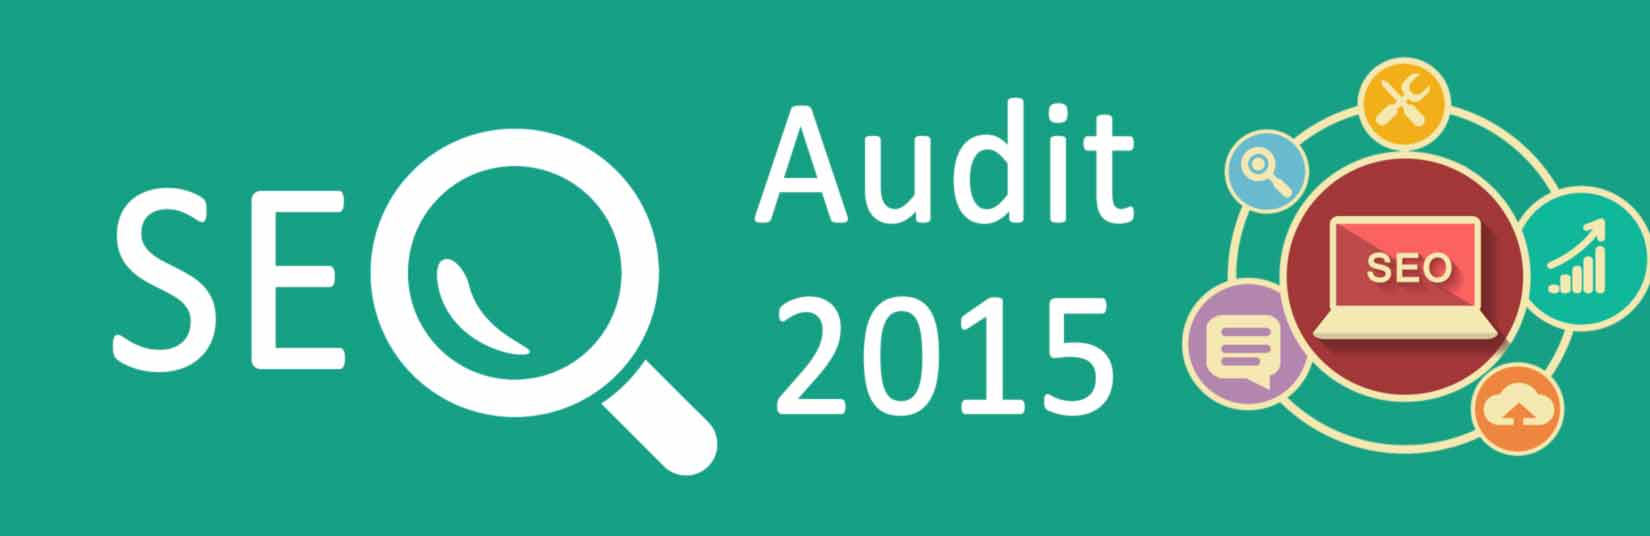 SEO Audit, SEO Audit by 2015, SEO Audit 2015